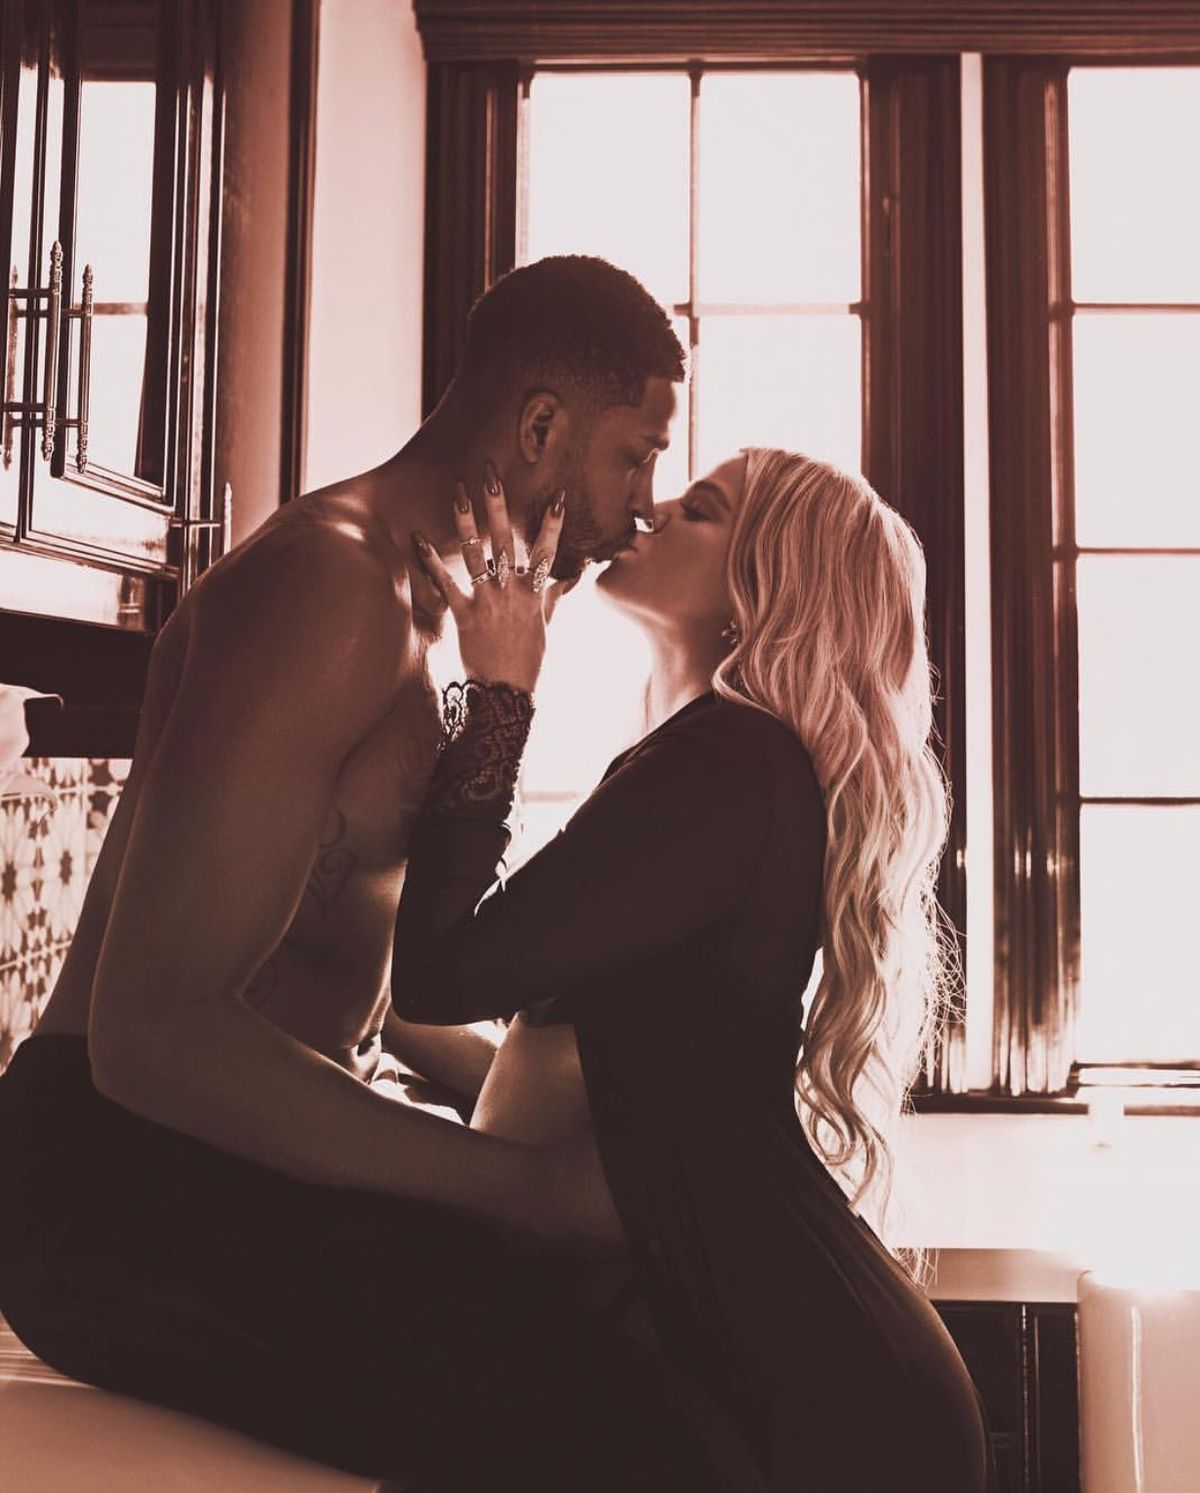 Tristan Thompson Is The Farthest Thing From What A Real Man Should Be